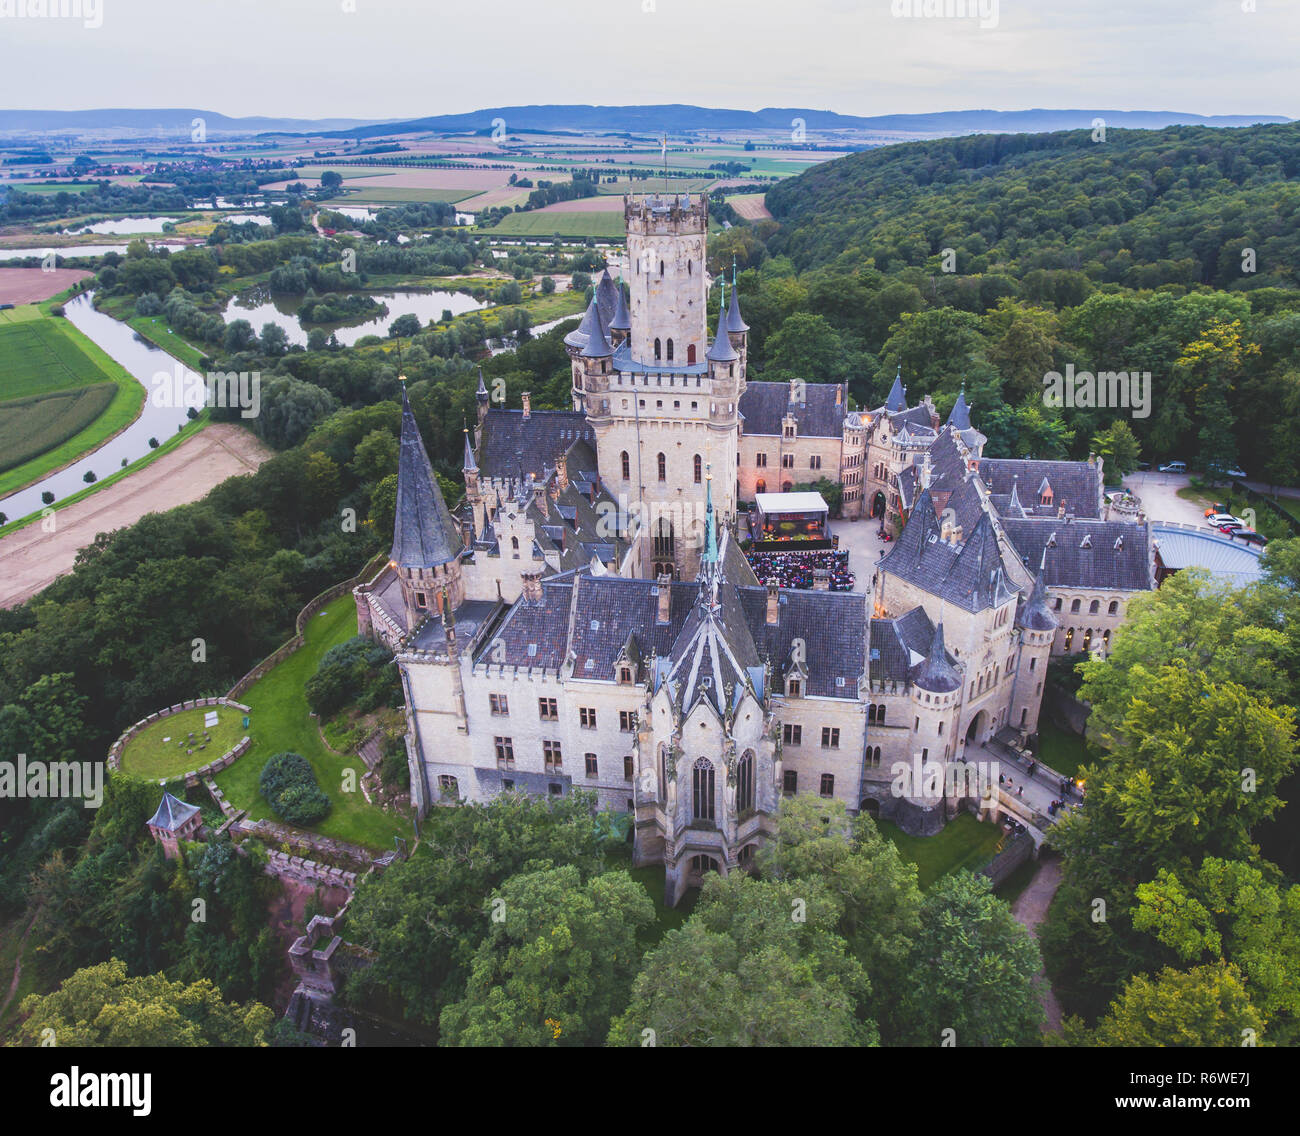 Schloss Derneburg Hochzeit Near Hanover Stock Photos Near Hanover Stock Images Page 3 Alamy